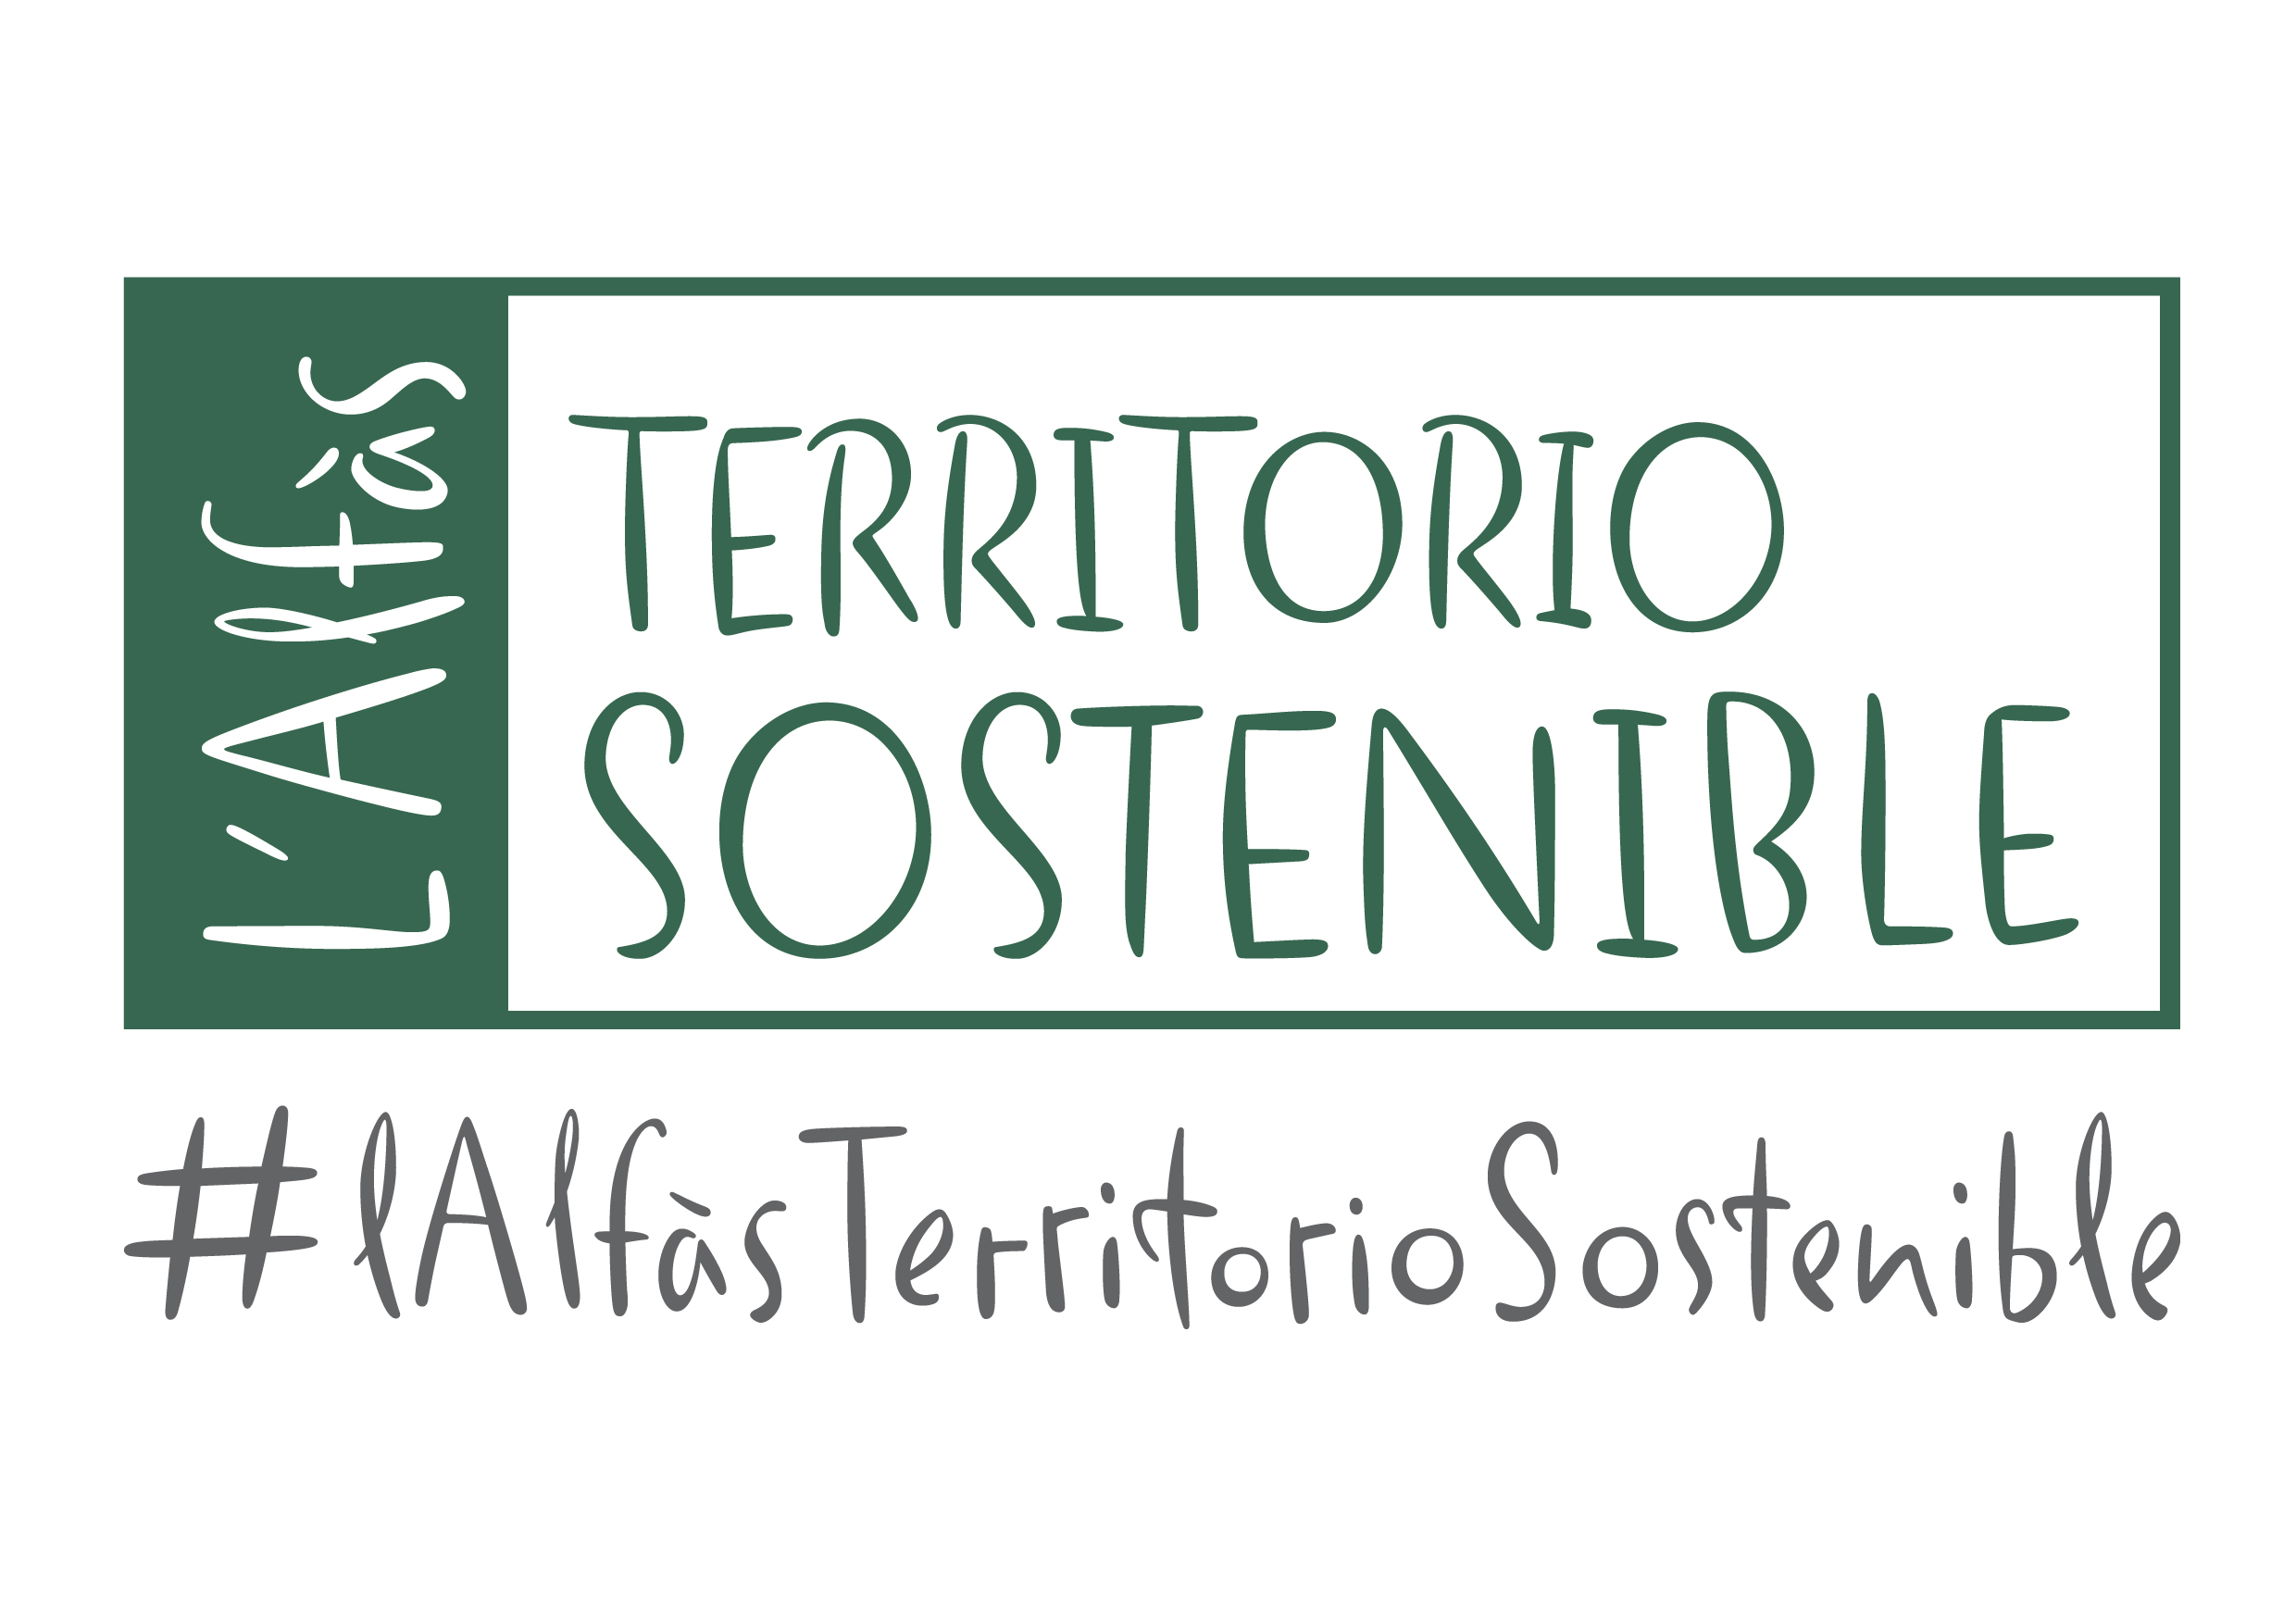 Territoriao Sostenible